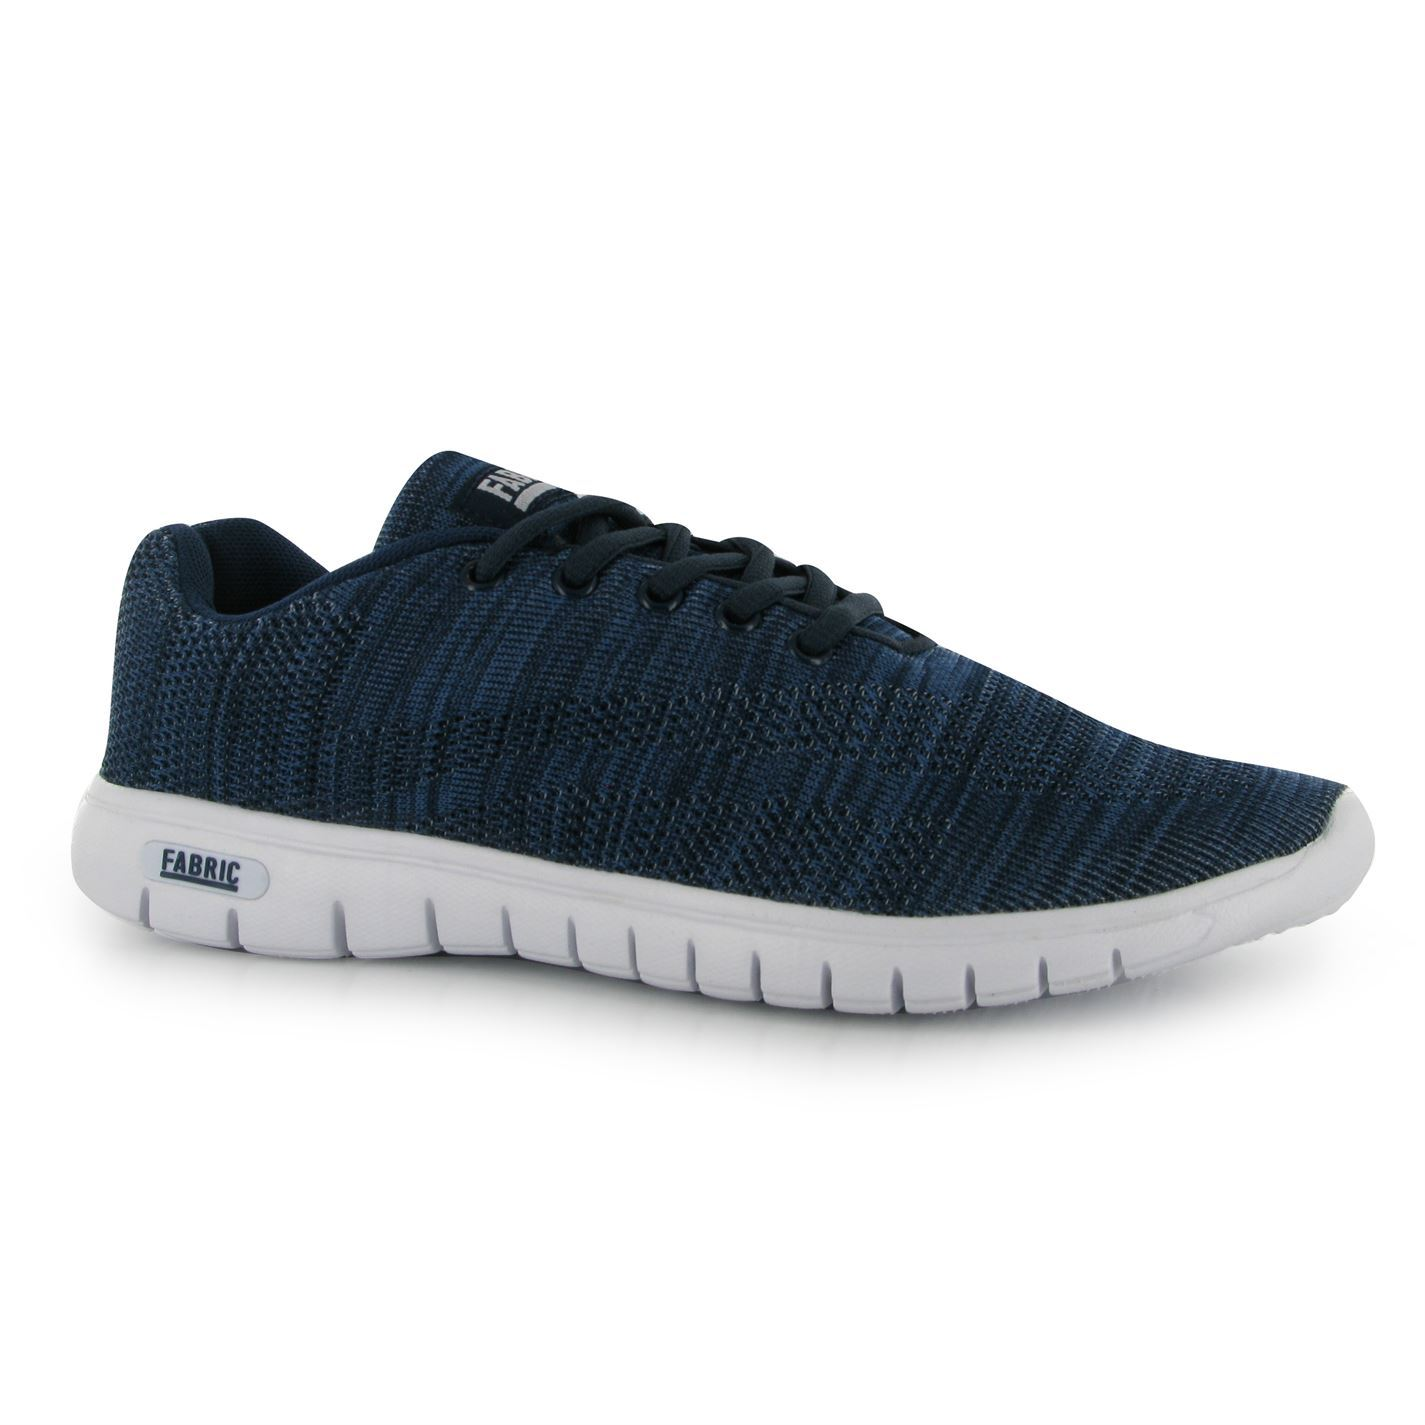 fabric flyer runner trainers review